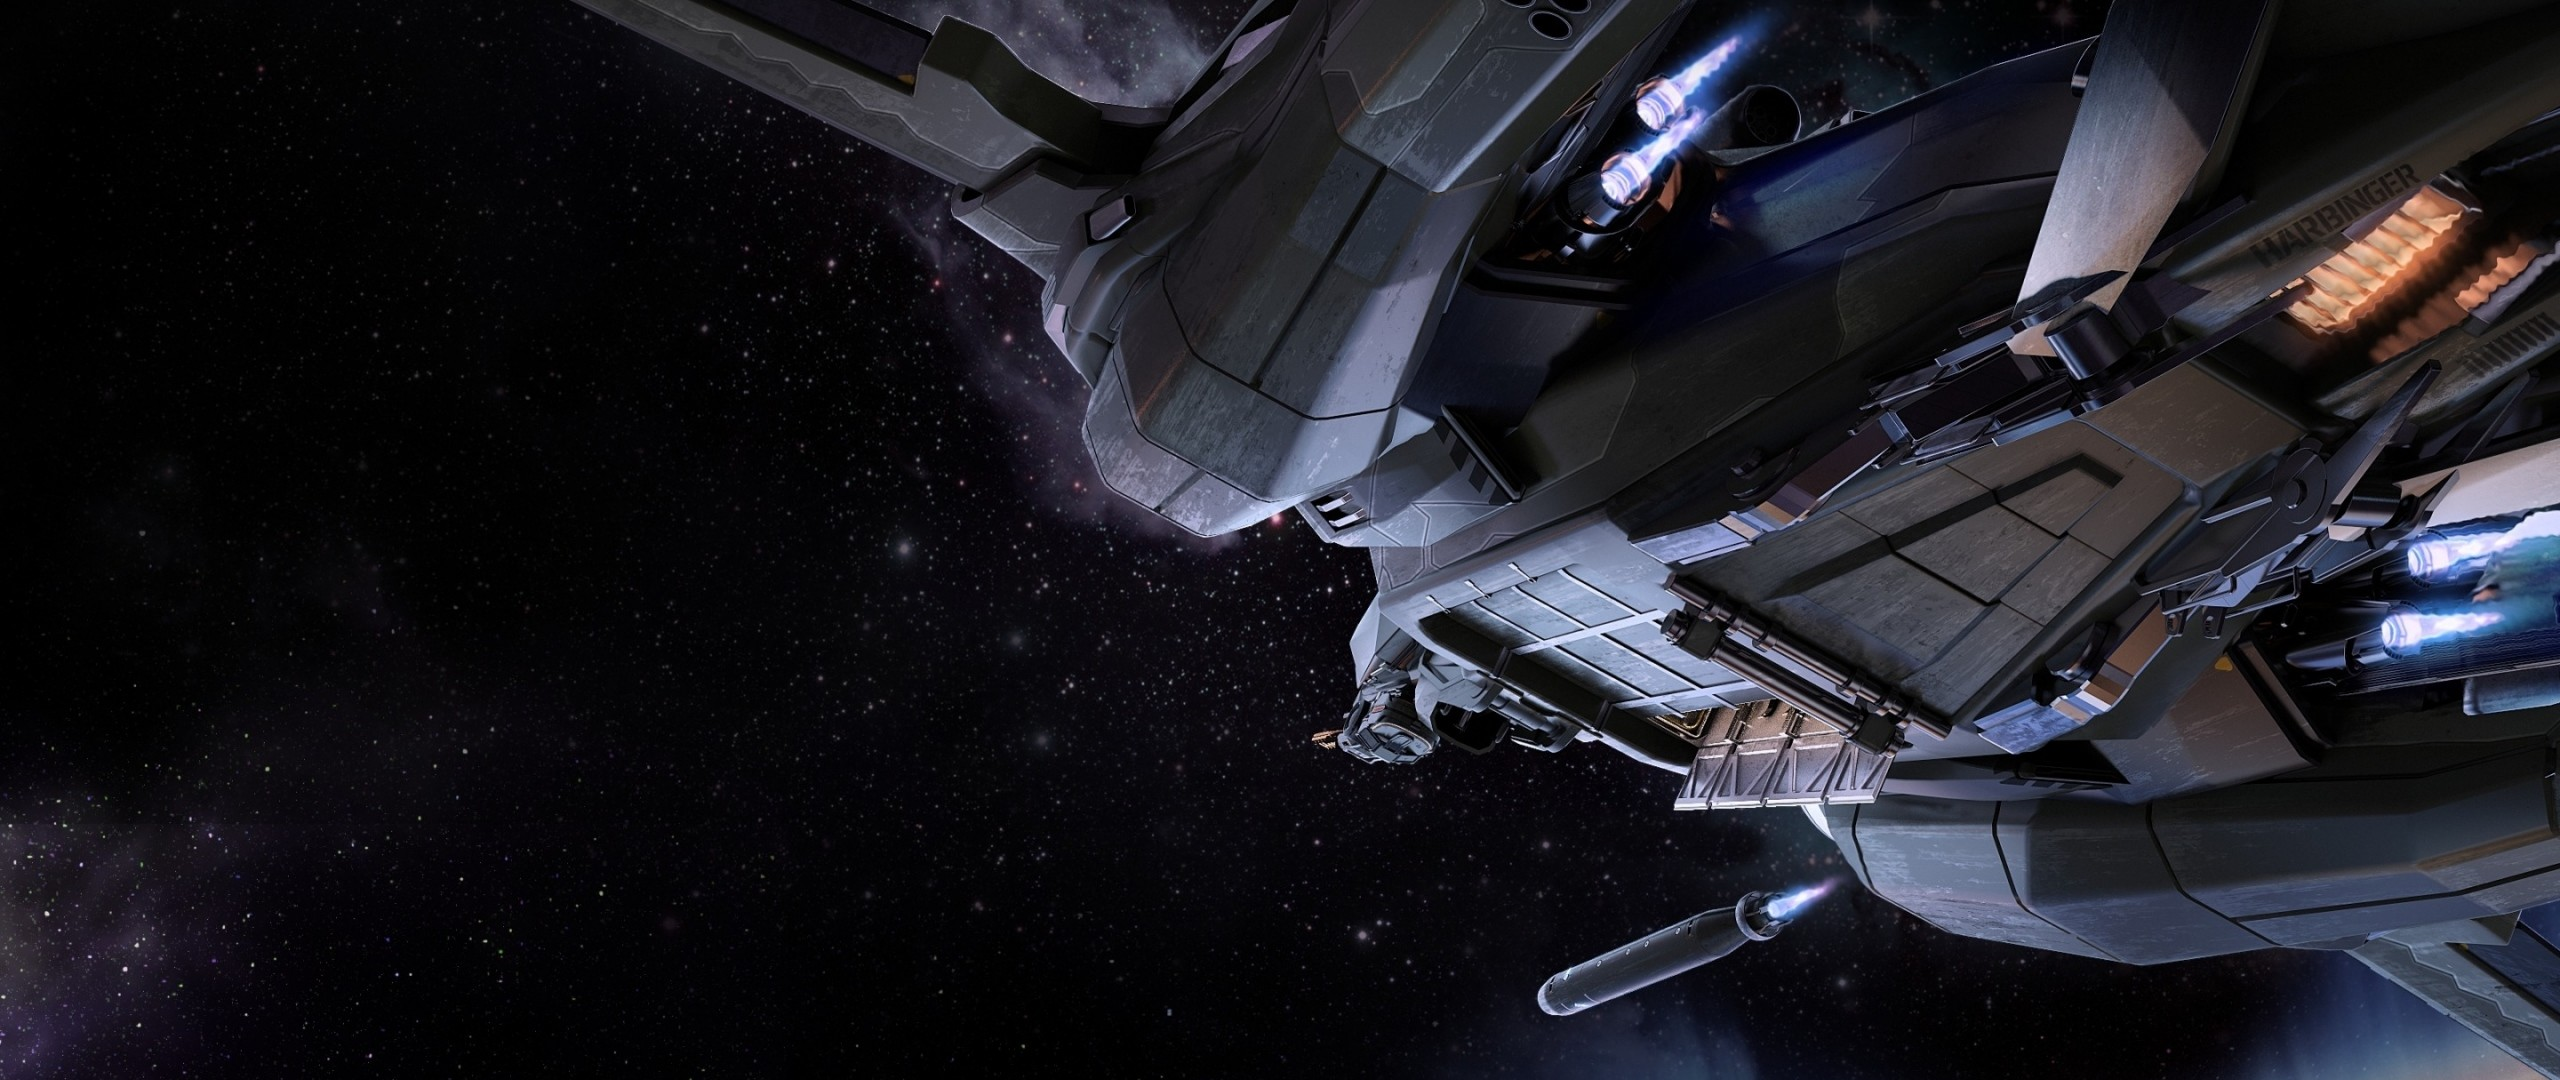 2560x1080  Wallpaper star citizen, vanguard, fighter, art